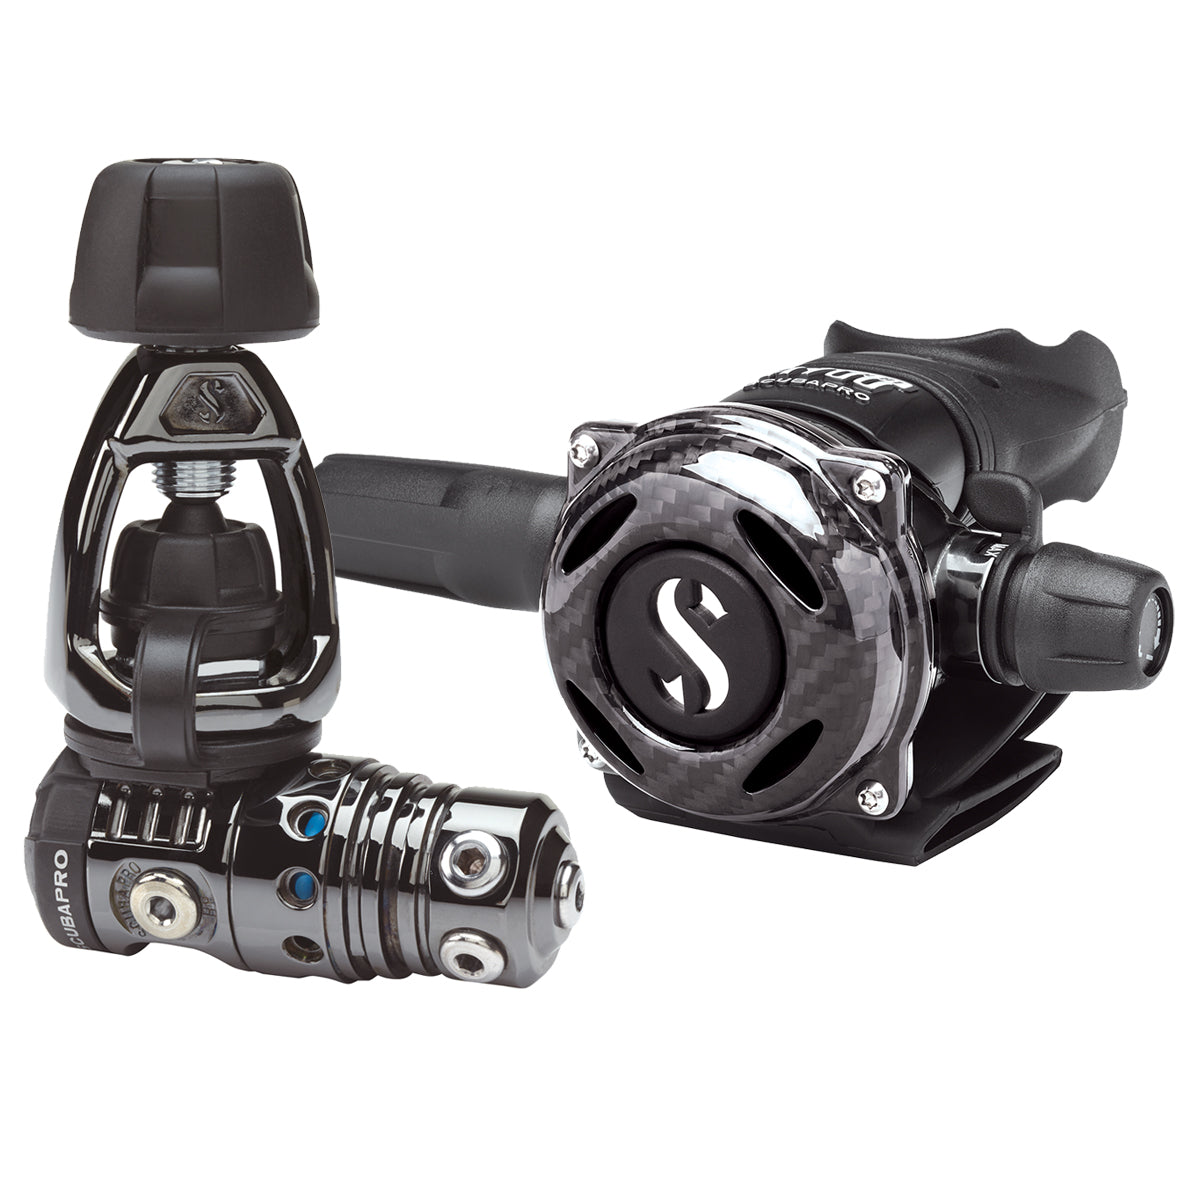 MK25 EVO BT/A700 CARBON BT DIVE REGULATOR SYSTEM, INT